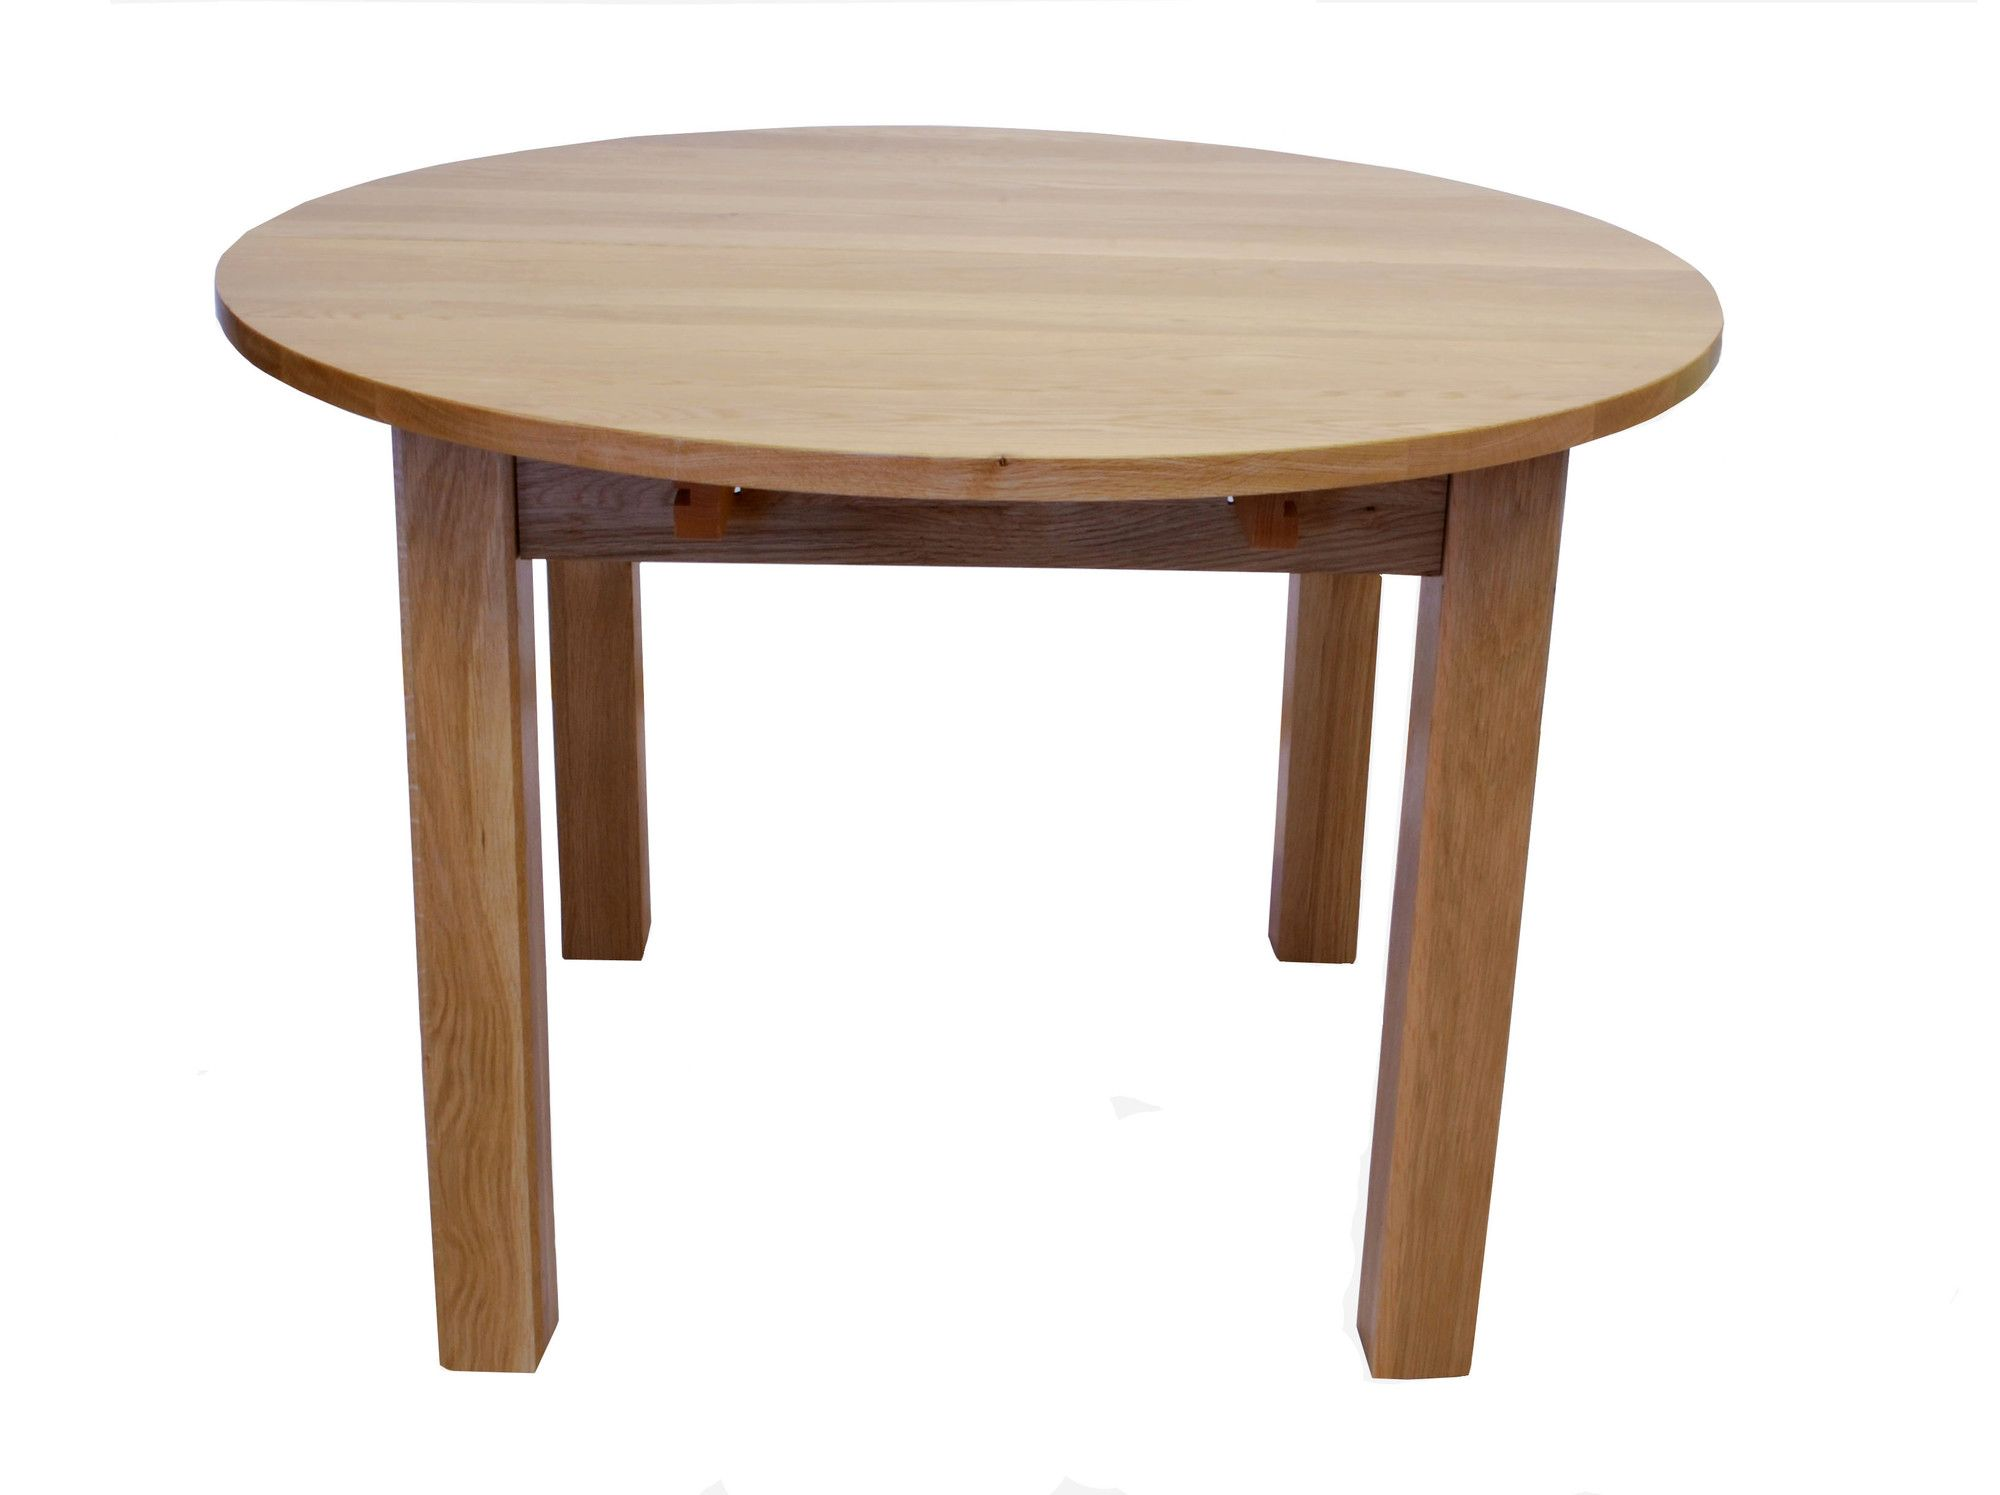 Extending Table 187 Round Extending Tables : 437 5054PI1000015MNwid2000amphei2000 from extendingtable.co.uk size 2000 x 2000 jpeg 109kB